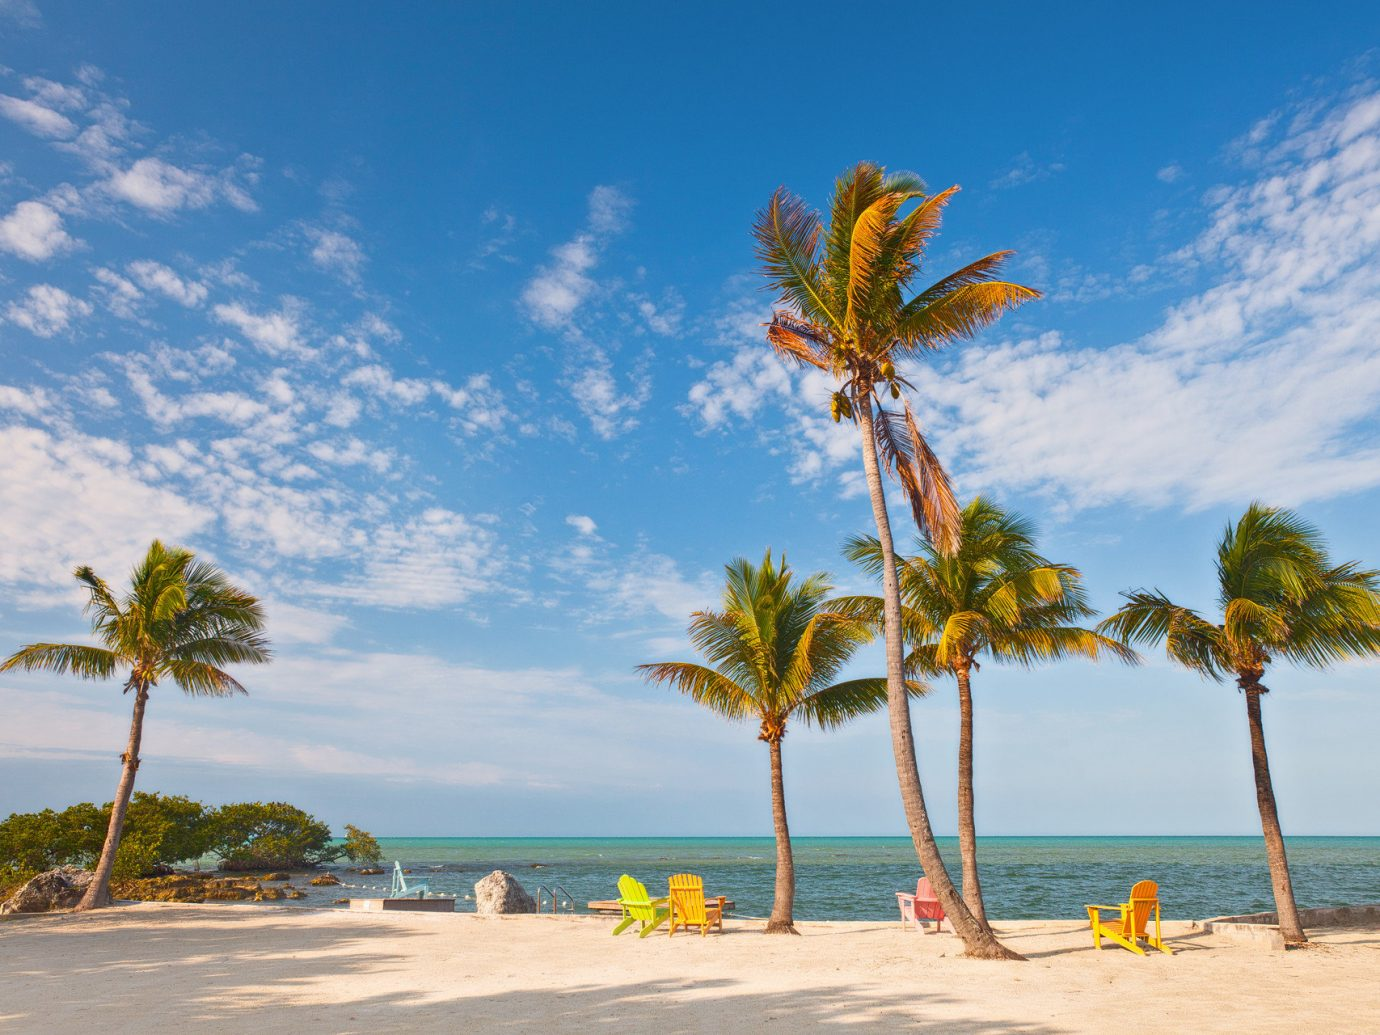 Trip Ideas sky tree outdoor water Beach palm shore body of water Sea Ocean caribbean vacation Coast palm family plant tropics arecales woody plant bay sand cape Island lined sandy